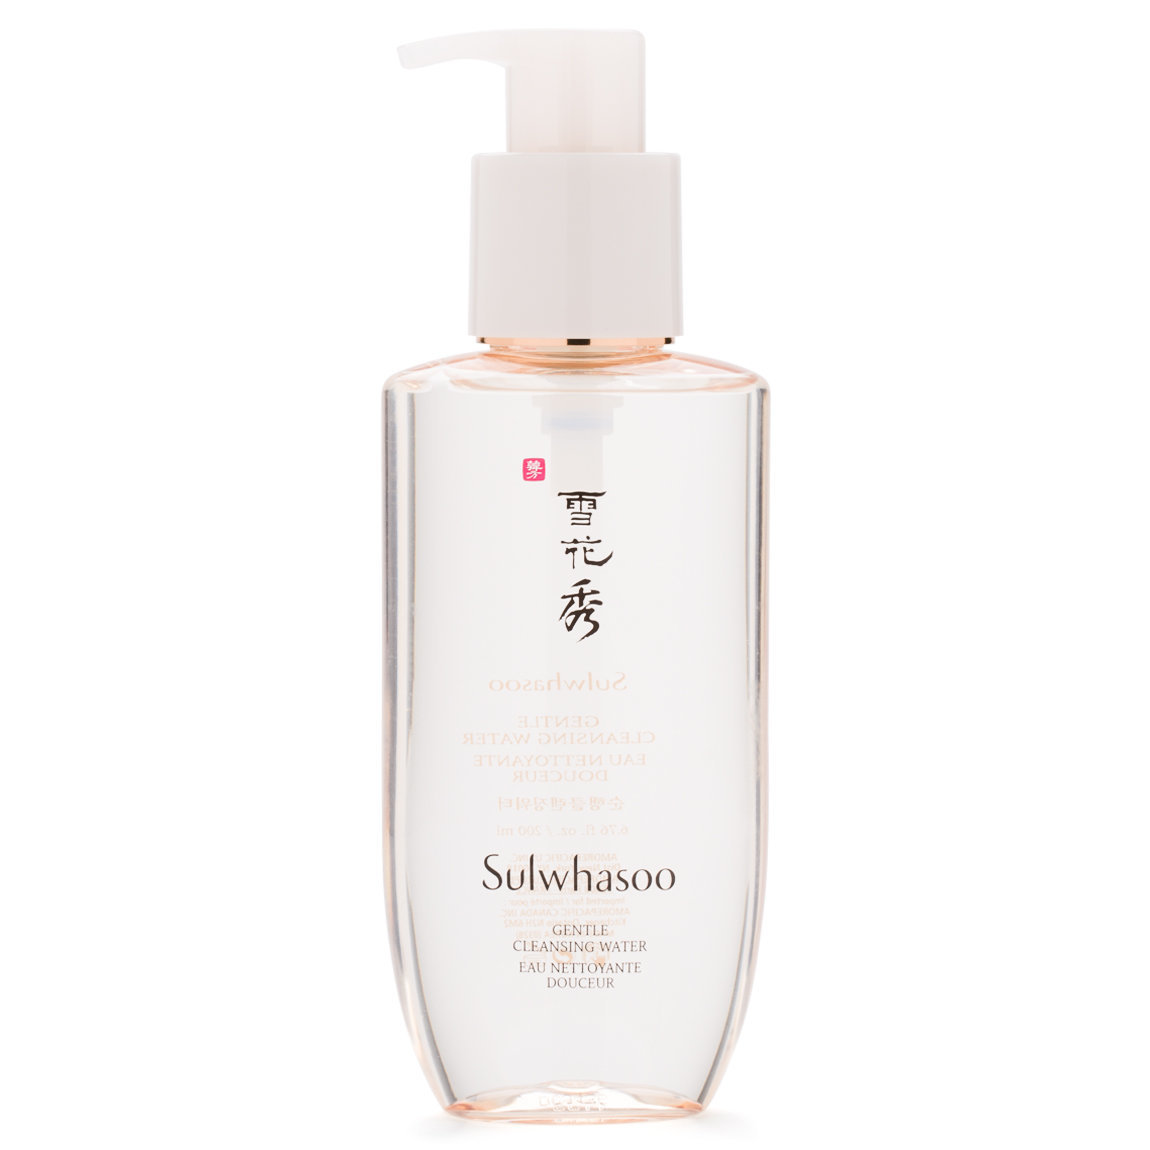 Sulwhasoo Gentle Cleansing Water product smear.